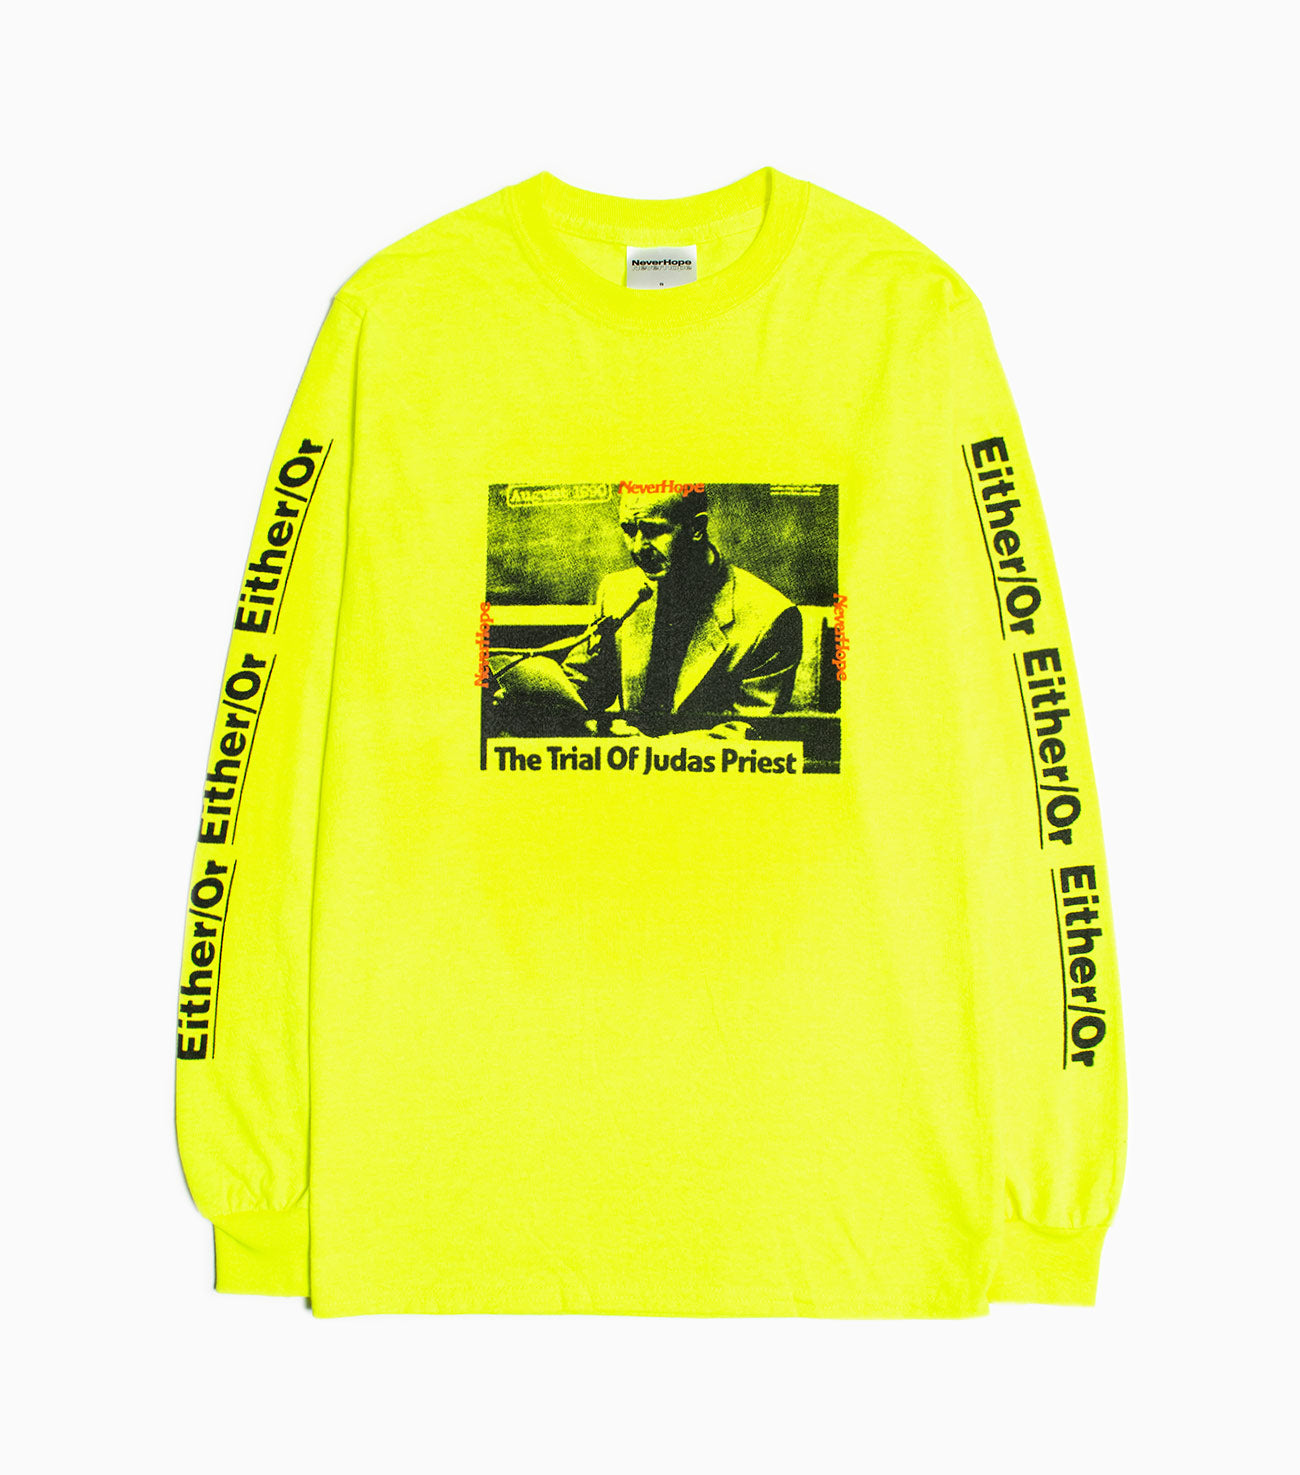 NeverHope Trials Long Sleeve - Green